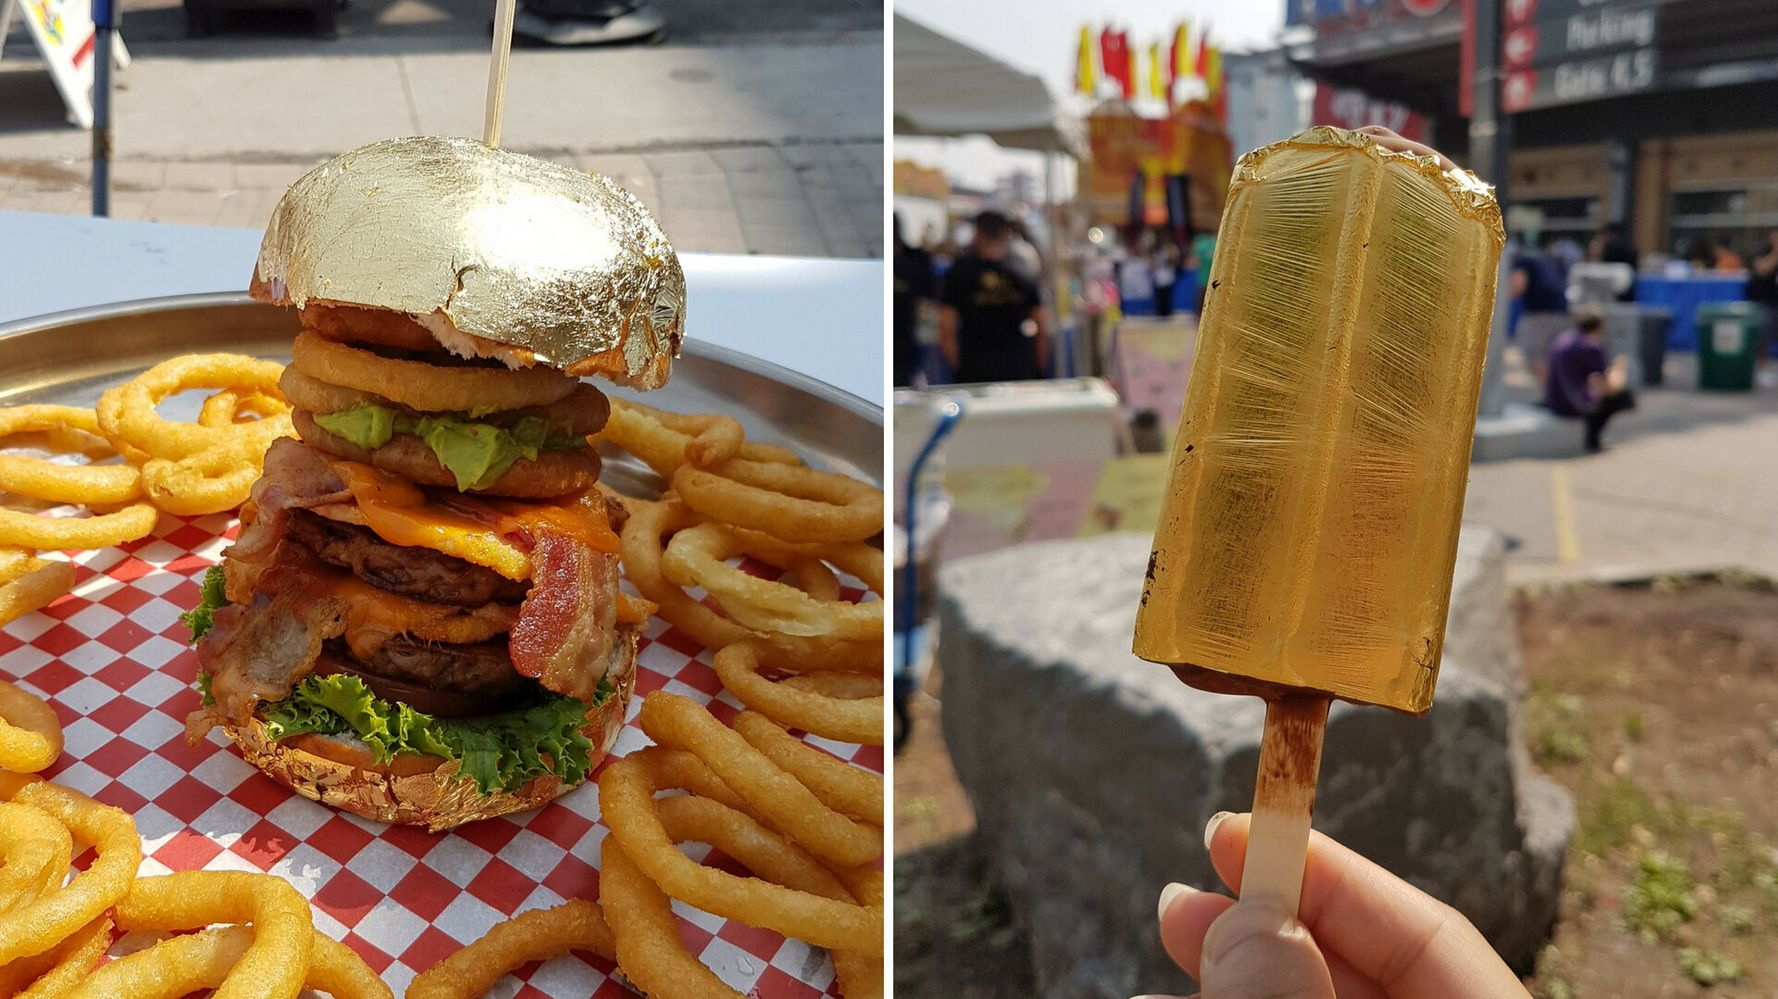 The CNE's 2018 Food Offerings Jump On The Edible Gold Trend